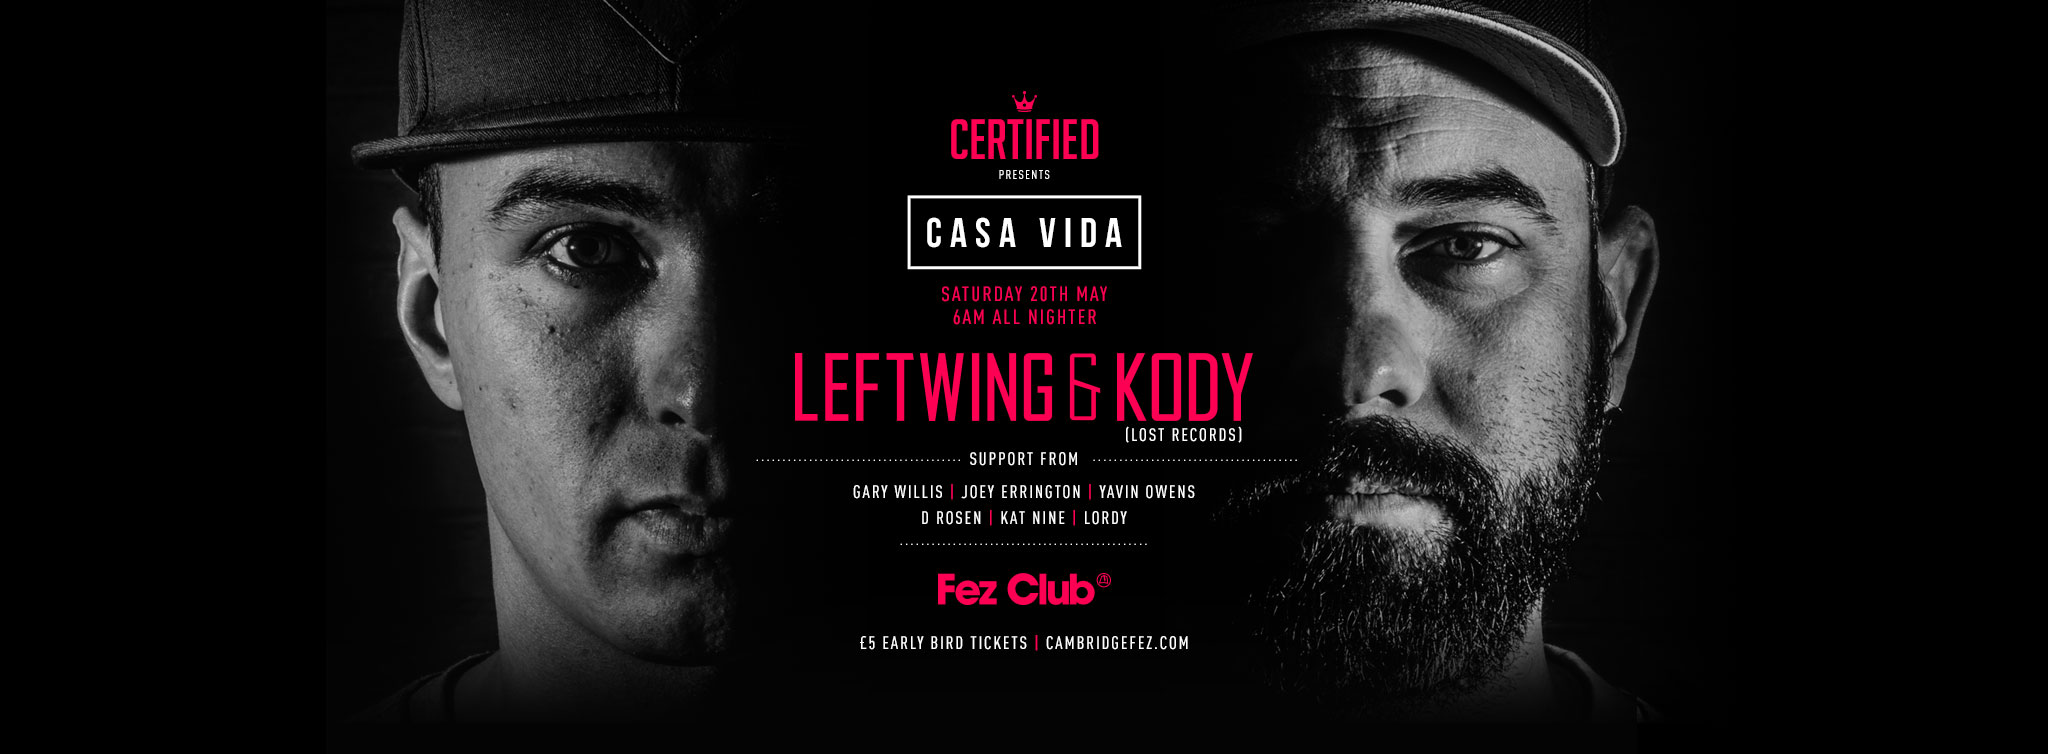 Casa Vida Leftwing & Kody